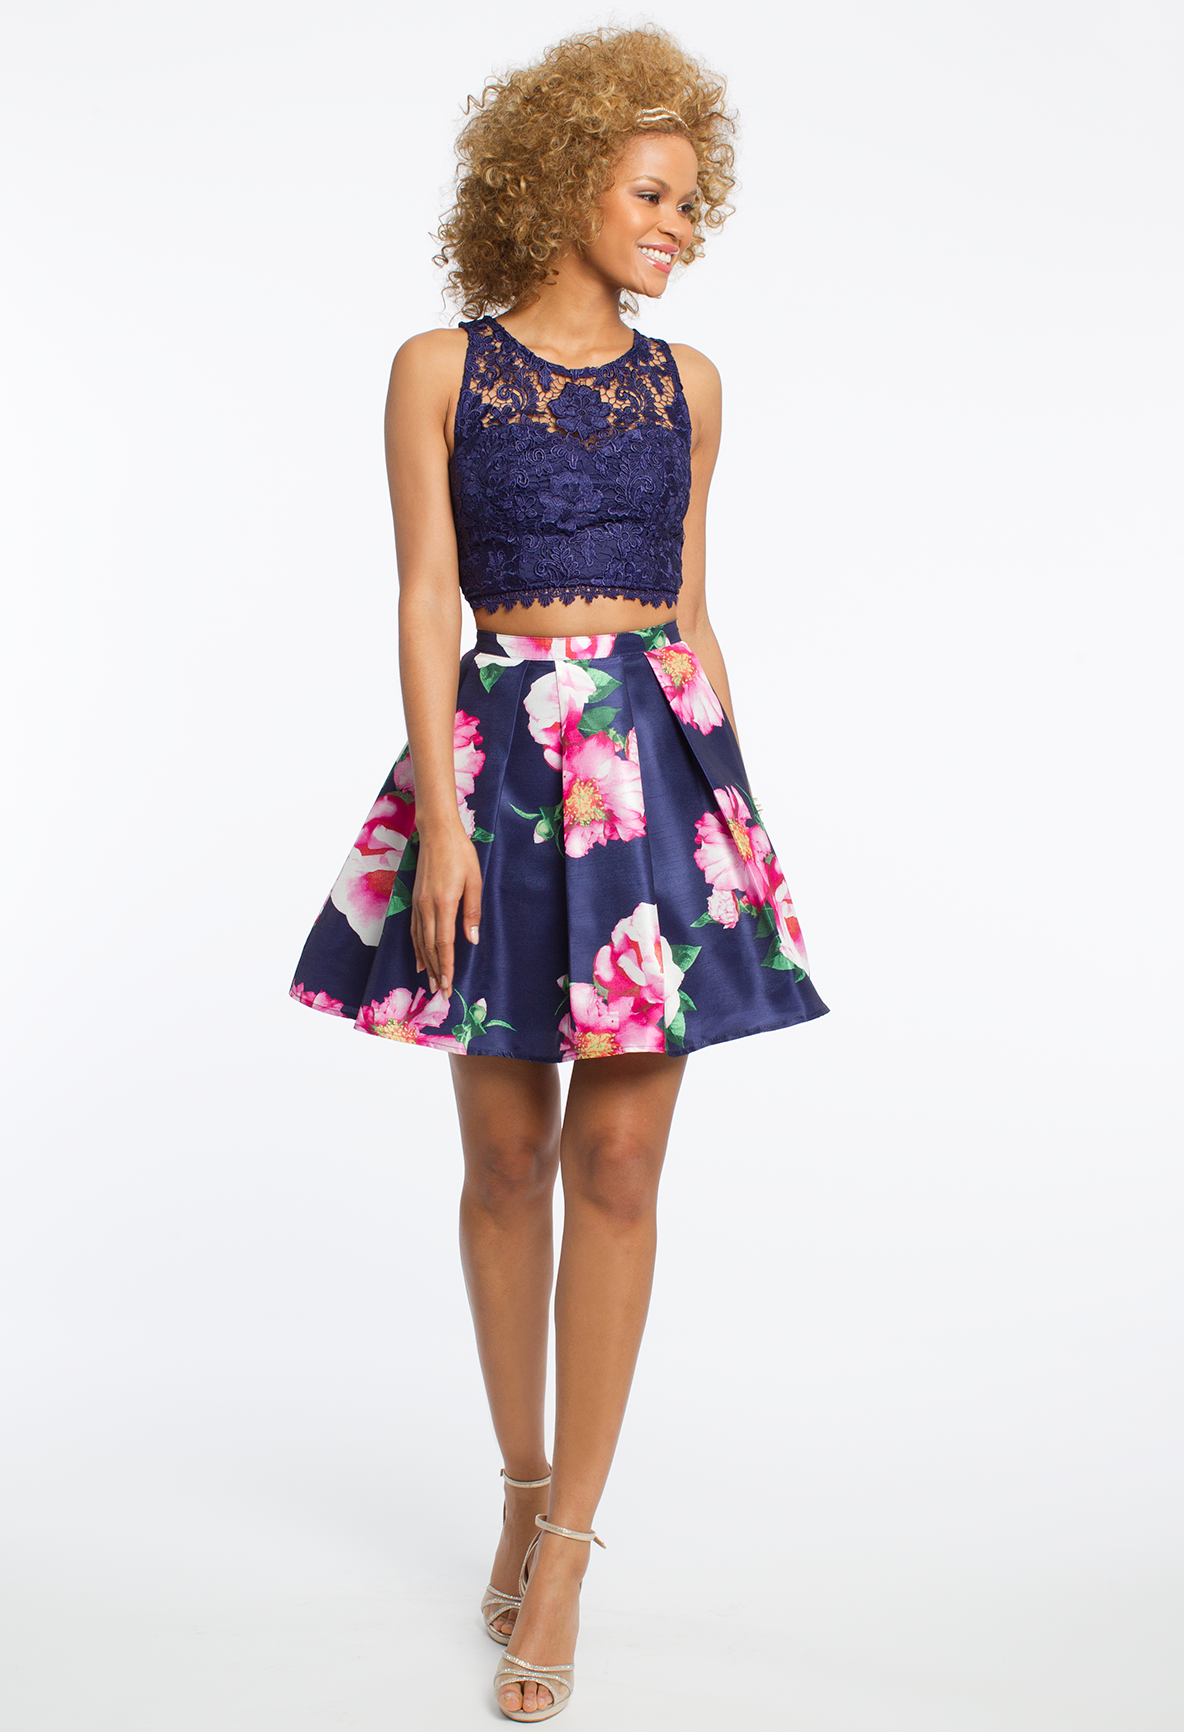 41f54948f93146 Lace Crop Top and Floral Skirt Two-Piece Dress #camillelavie #CLVprom